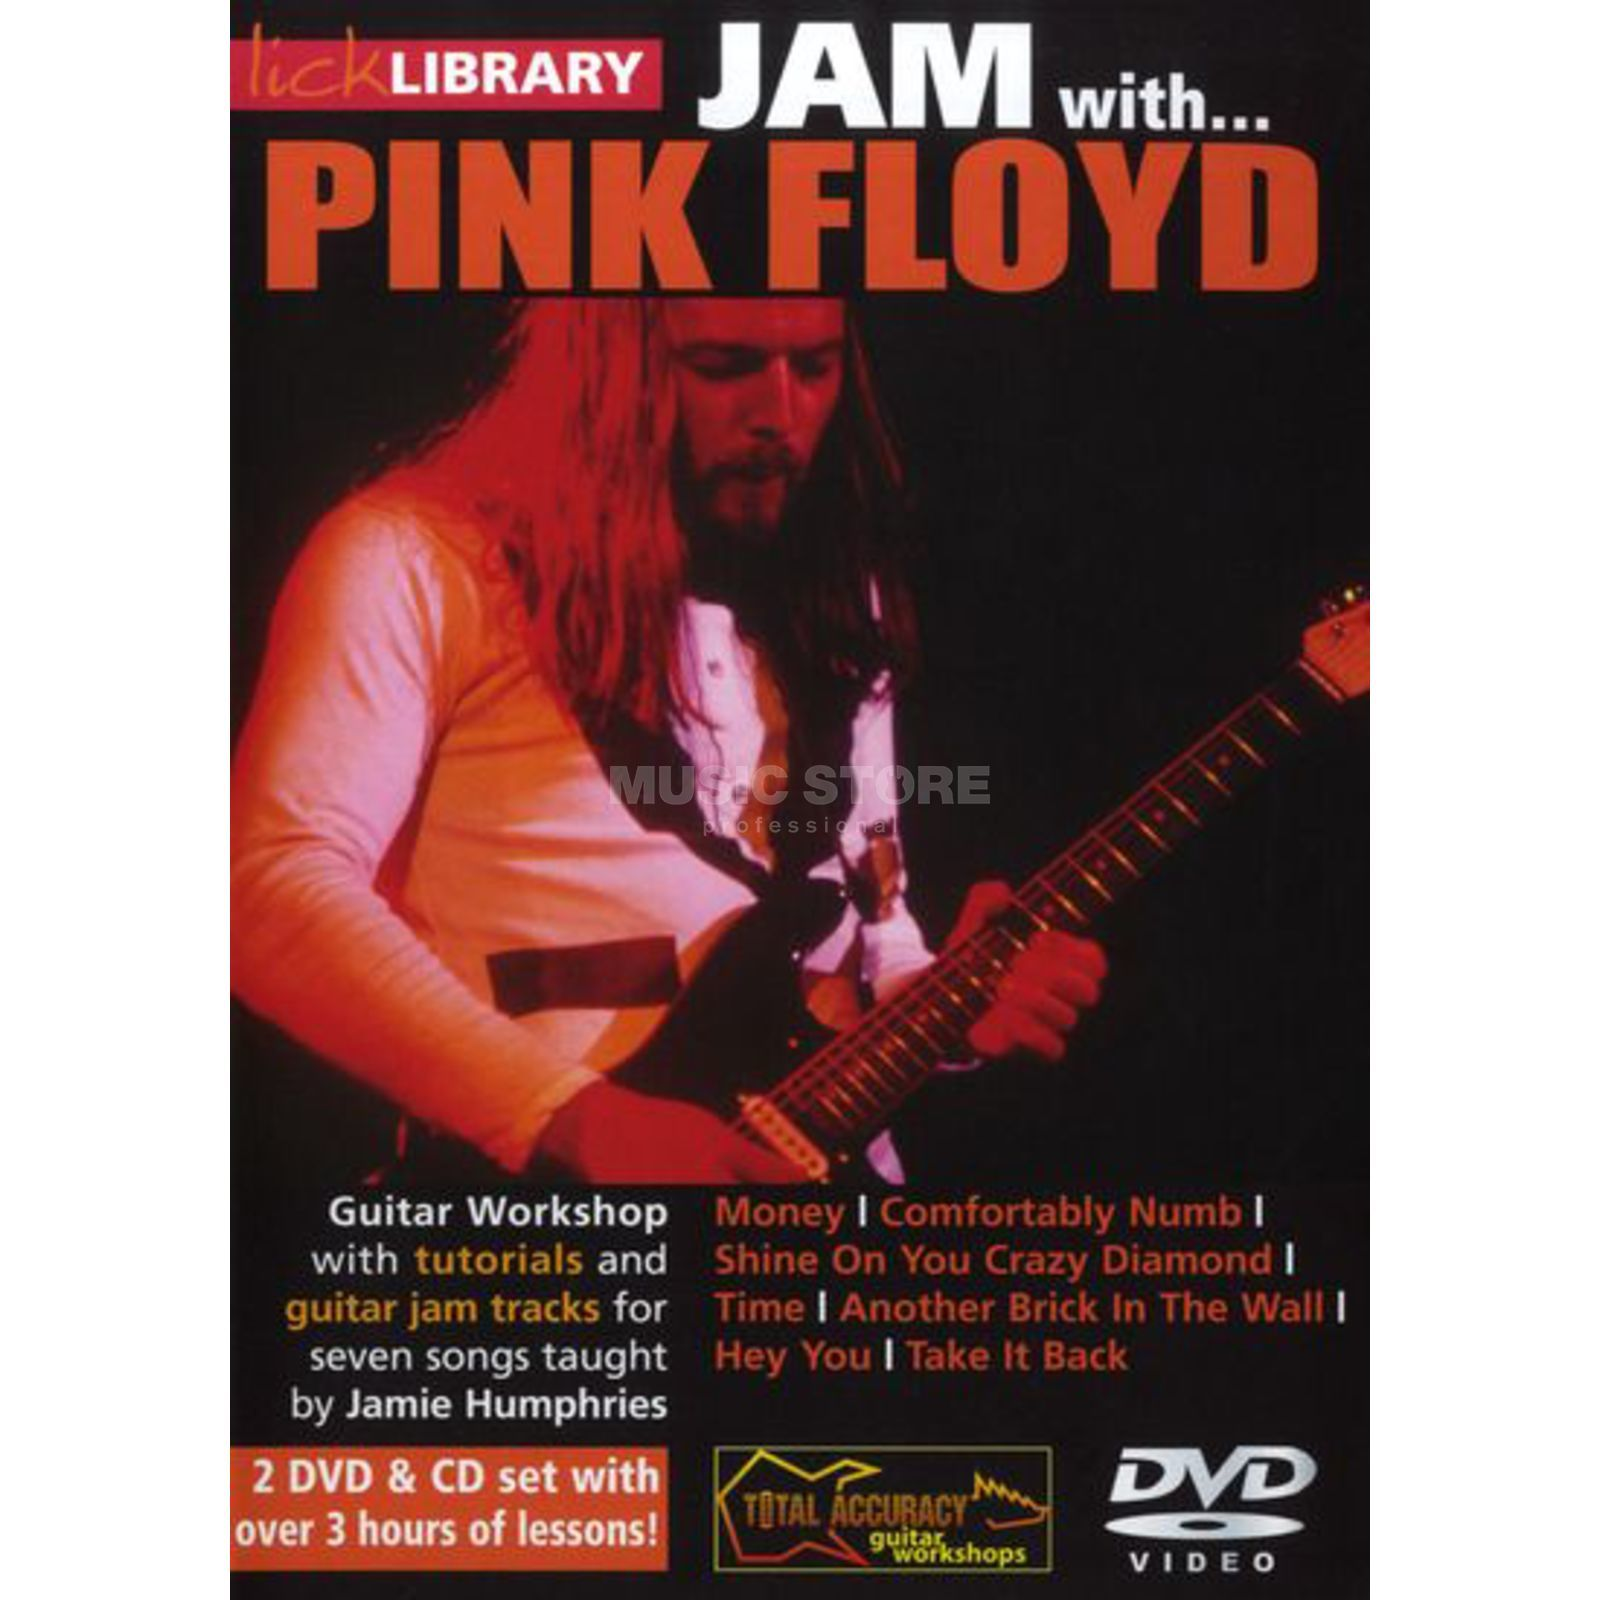 Ist Lick library jam with pink floyd amazing this